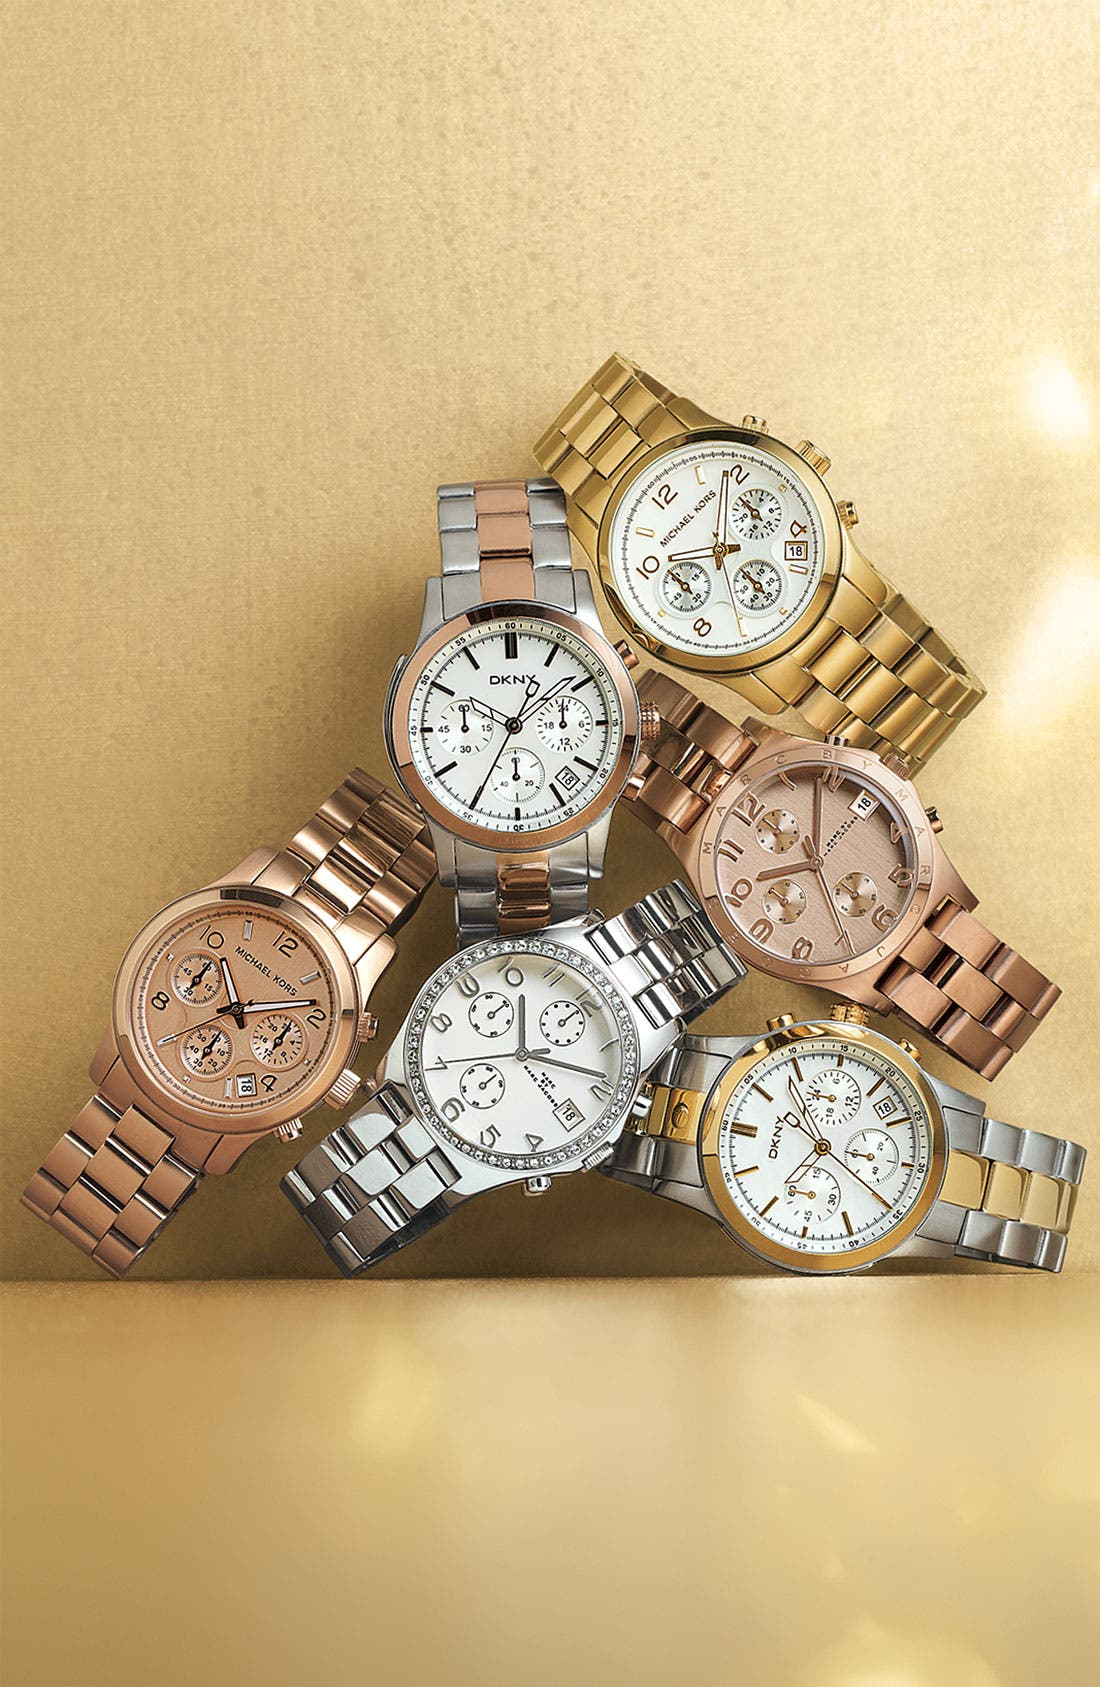 MARC JACOBS,                             'Henry' Chronograph Bracelet Watch, 37mm,                             Alternate thumbnail 3, color,                             710